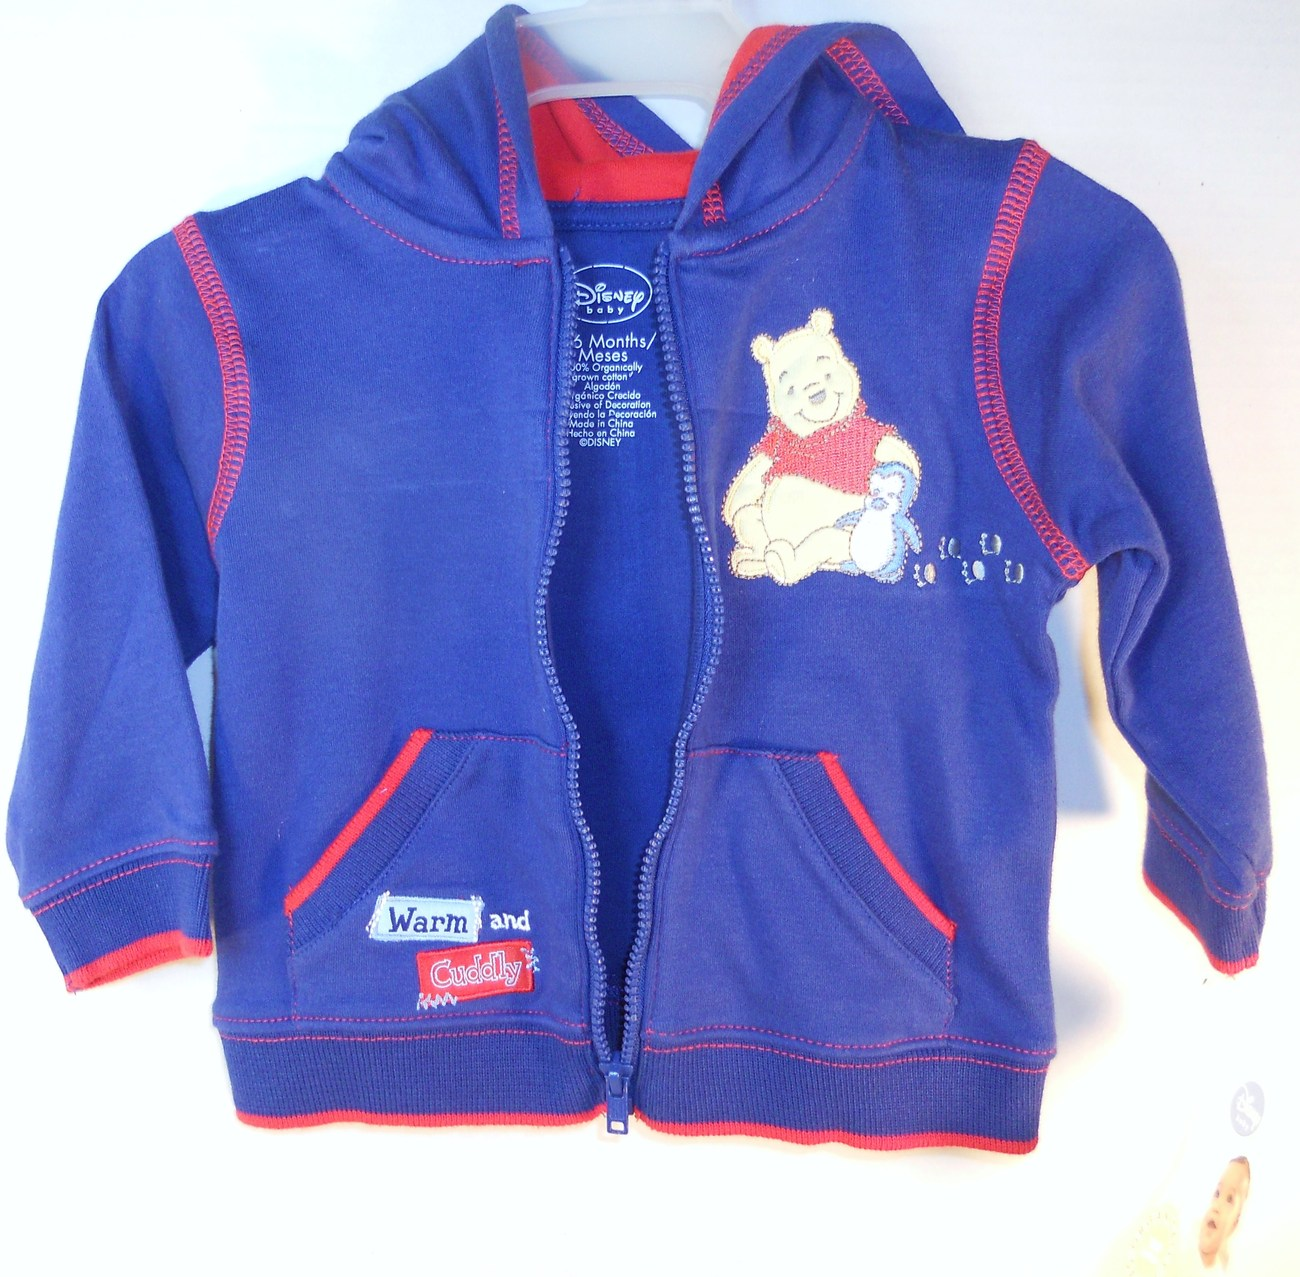 Image 3 of Disney Child Baby Navy red Warm-up suit 3/6 months Winnie the Pooh